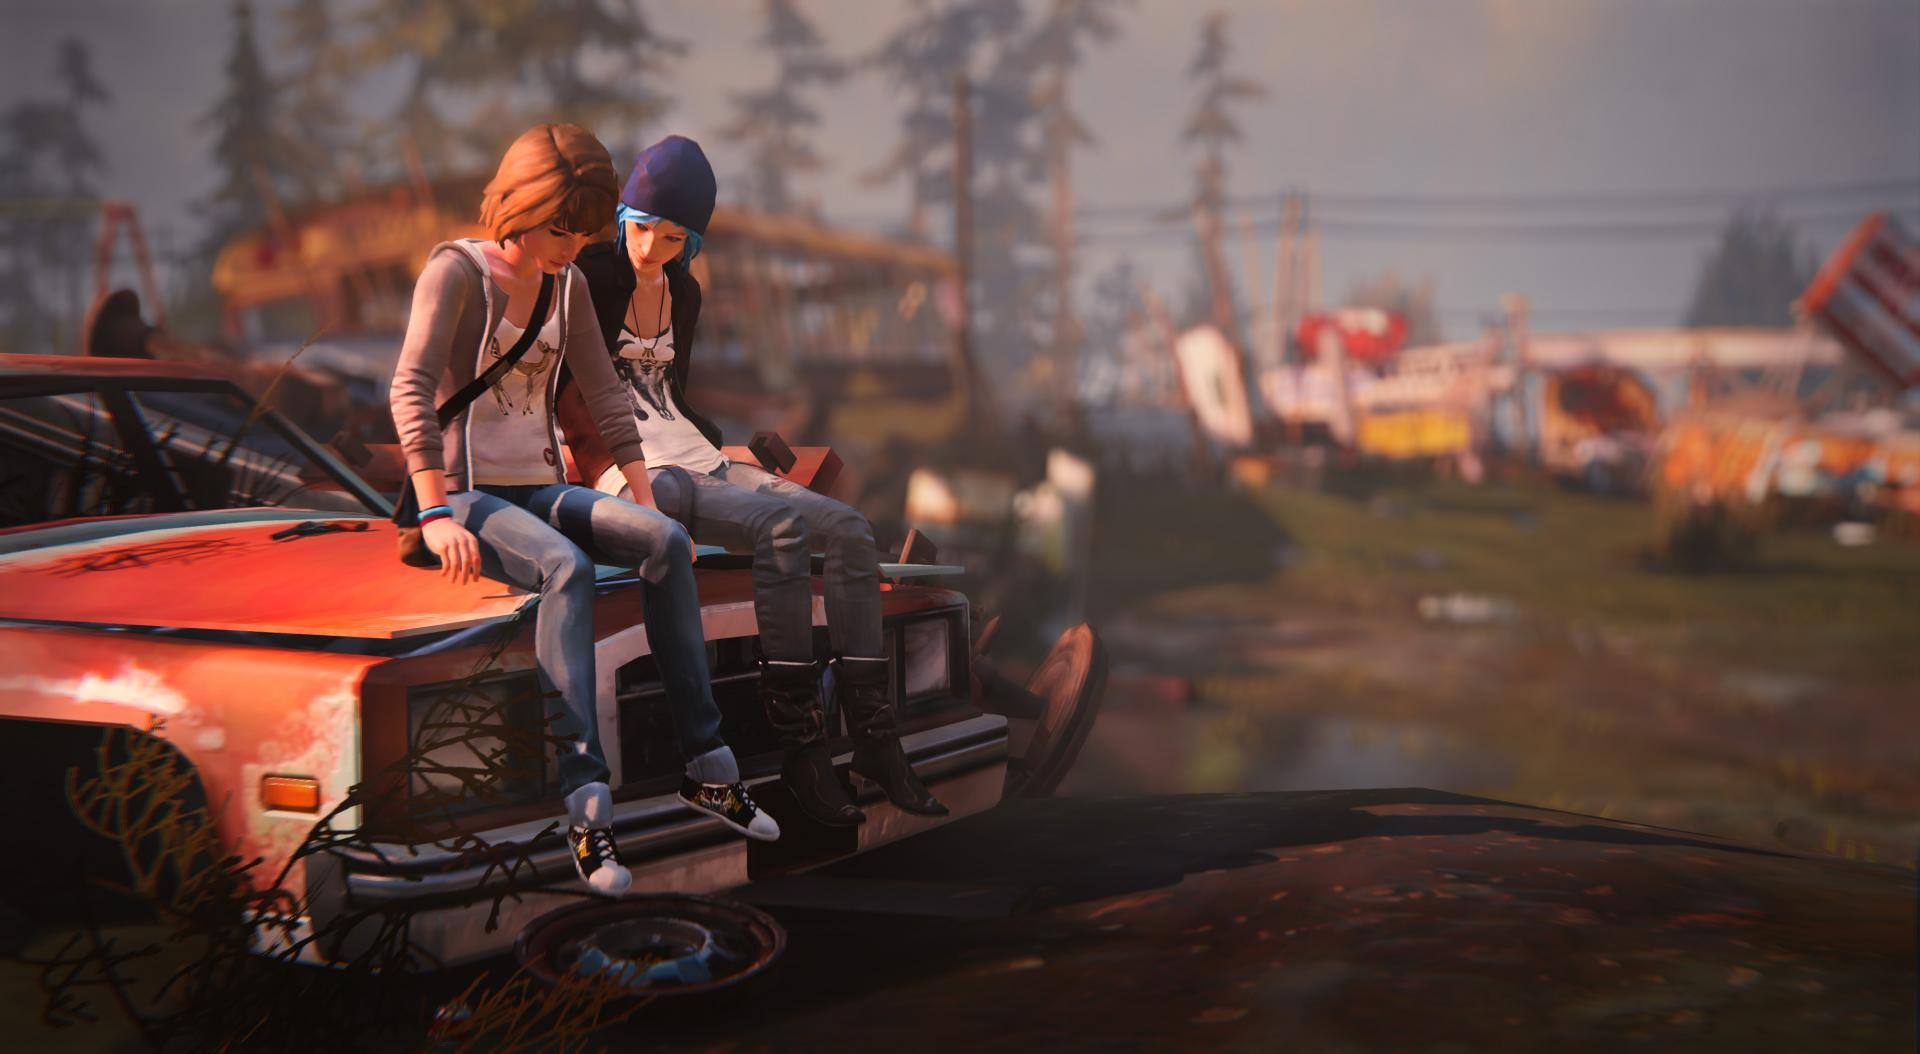 Life is strange decharge